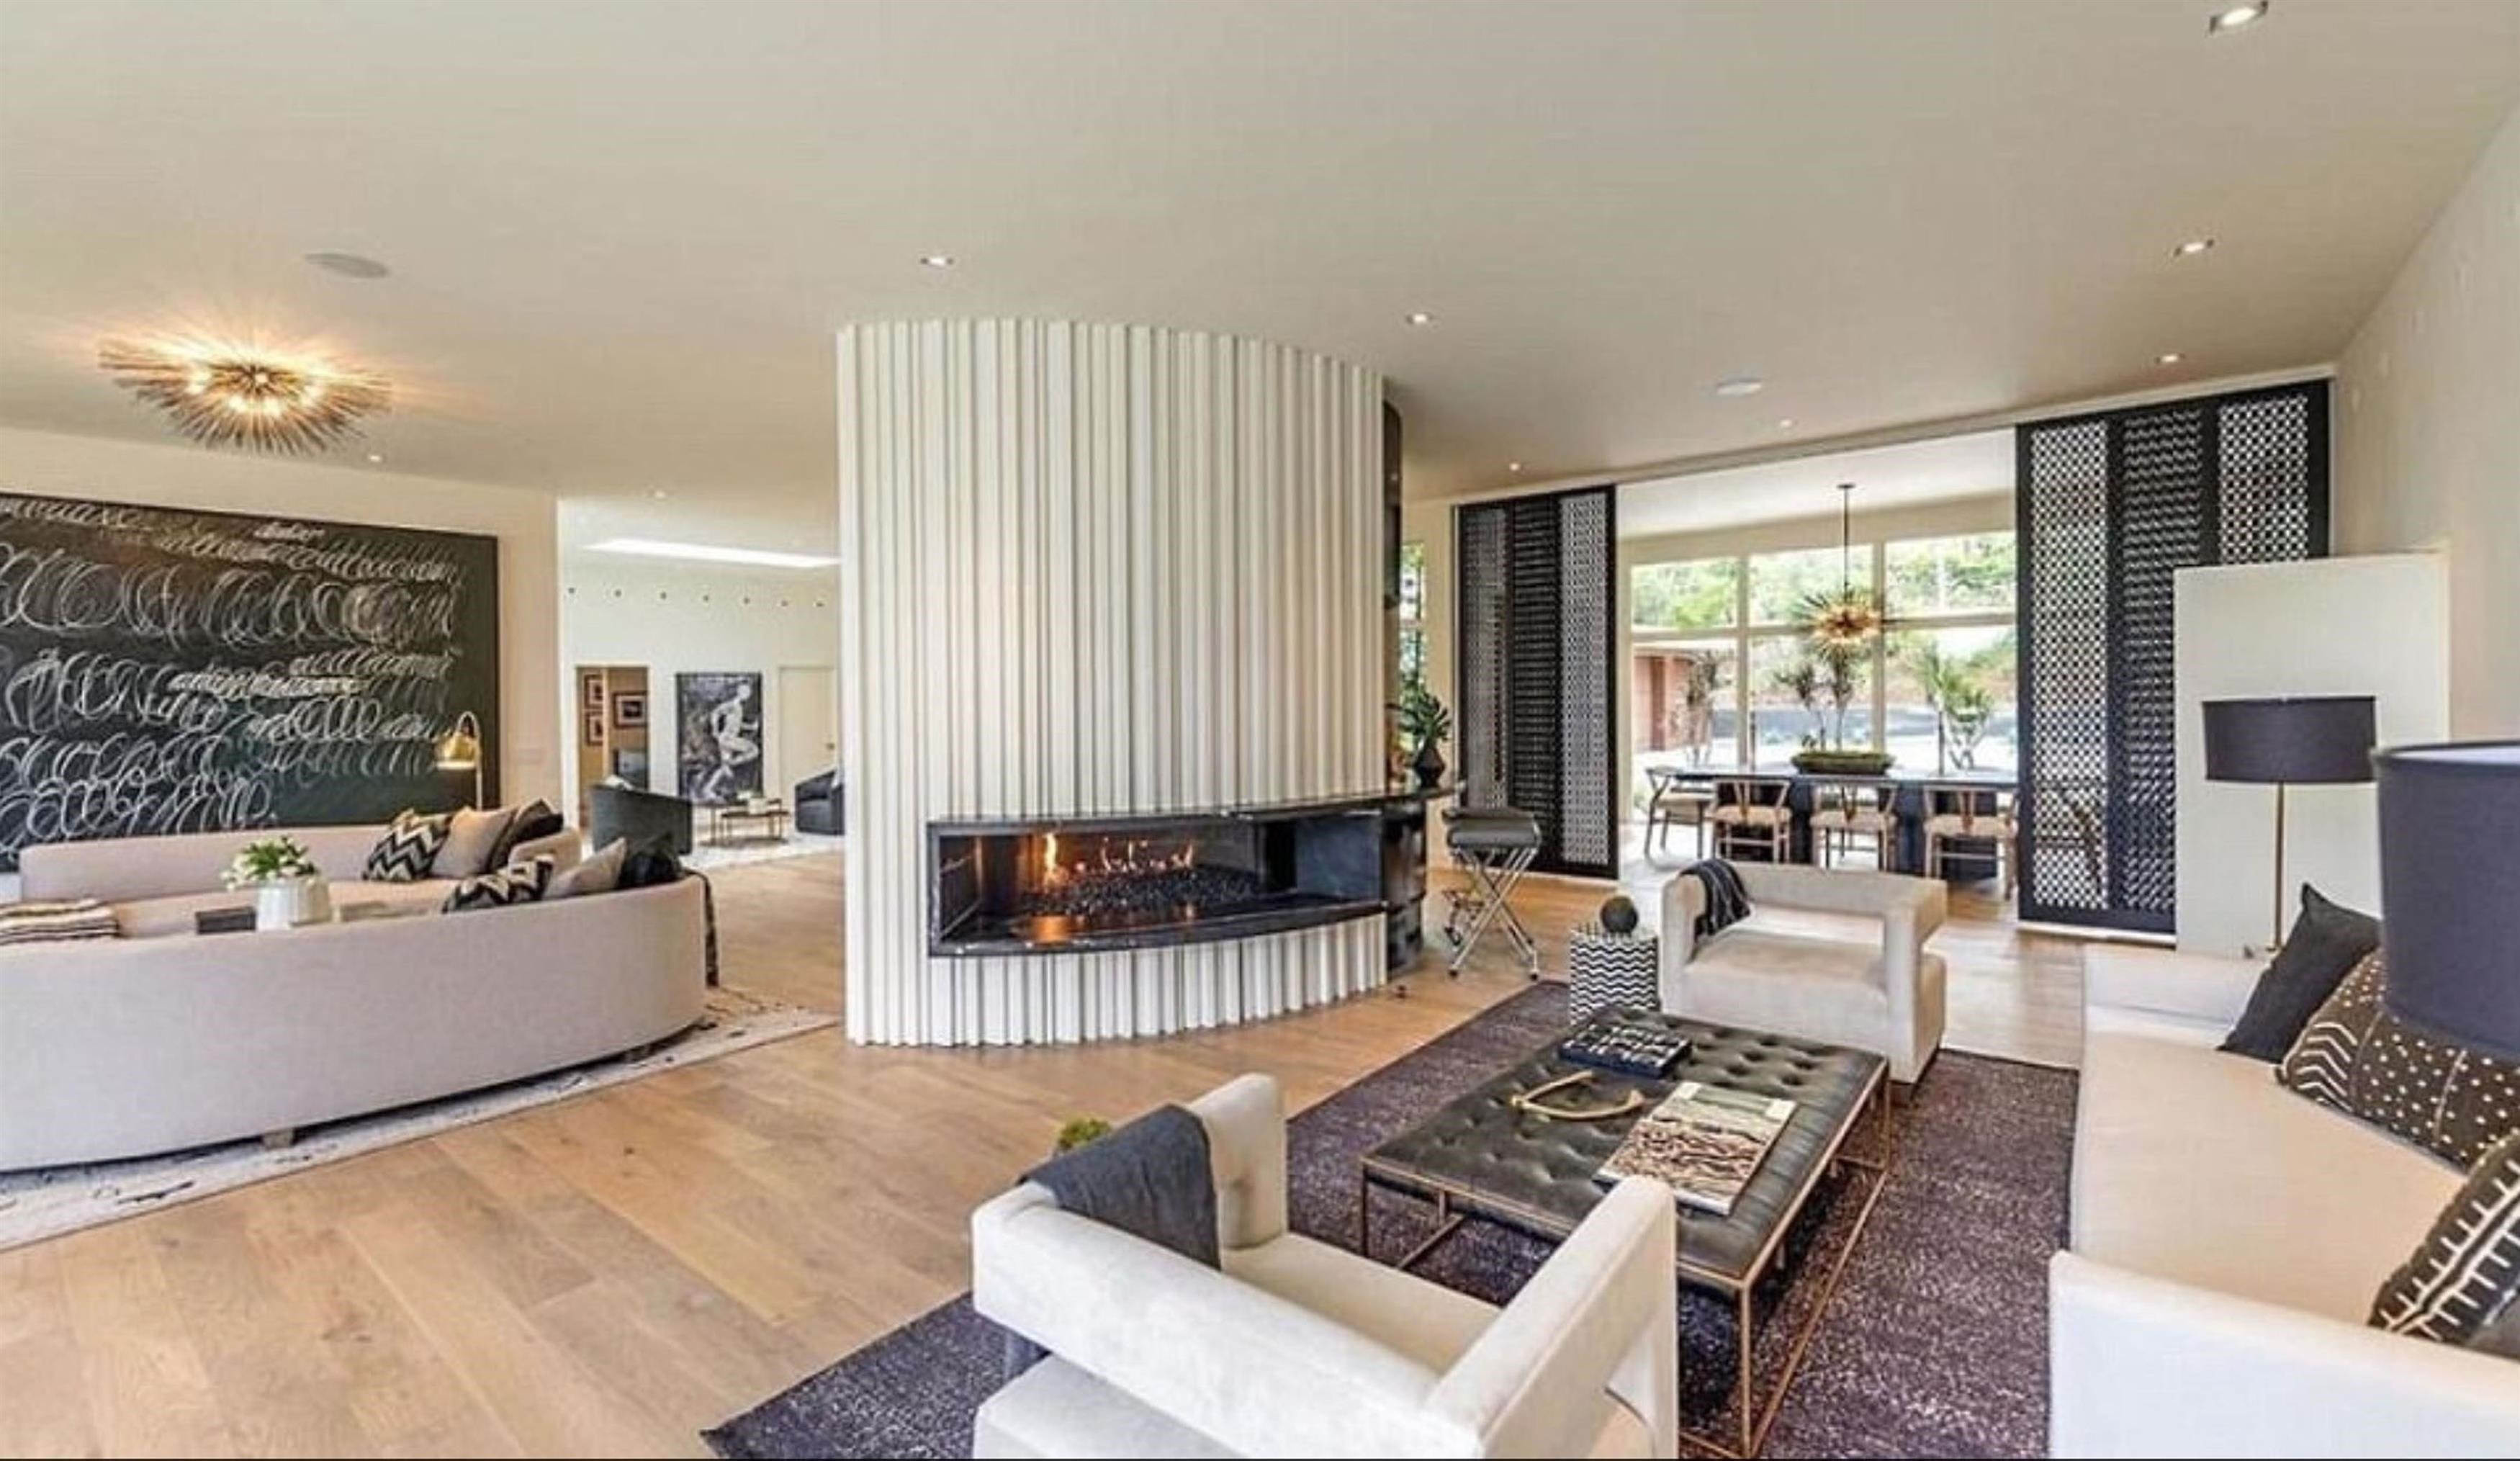 ** RIGHTS: WORLDWIDE EXCEPT IN UNITED STATES ** Los Angeles, CA  - Cindy Crawford and Randy Gerber splash out  million on new Beverly Hills home. The Hollywood couple put their luxury Malibu abode on the market in November 2016 for a cool million - and now they have swapped their seaside home for a jaw-dropping pad in Beverly Hills. According to US reports, they purchased the one-storey contemporary home  in the idyllic 90210 zip code for million. The property is located in trhe neighbourhood of Trousdale Estates and was originally listed for an eye-water .75million. The deal reportedly closed earlier this week with the dynamic couple purchasing the home from OneRepublic singer Ryan Tedder - who has worked with U2, Beyonce, Adele and Ed Sheeran. Cindy and Rande's four bedroom property is equipped with an impressive outdoor area and pool and a fire pit. The modern home boasts an open plan living area and kitchen which flows perfectly into their manicured lawns and incredible view over the city with the help of folding glass doors. Flooding  Pictured: Cindy Crawford, Randy Gerber  BACKGRID UK 14 SEPTEMBER 2017, Image: 349341312, License: Rights-managed, Restrictions: , Model Release: no, Credit line: Profimedia, Xposurephotos